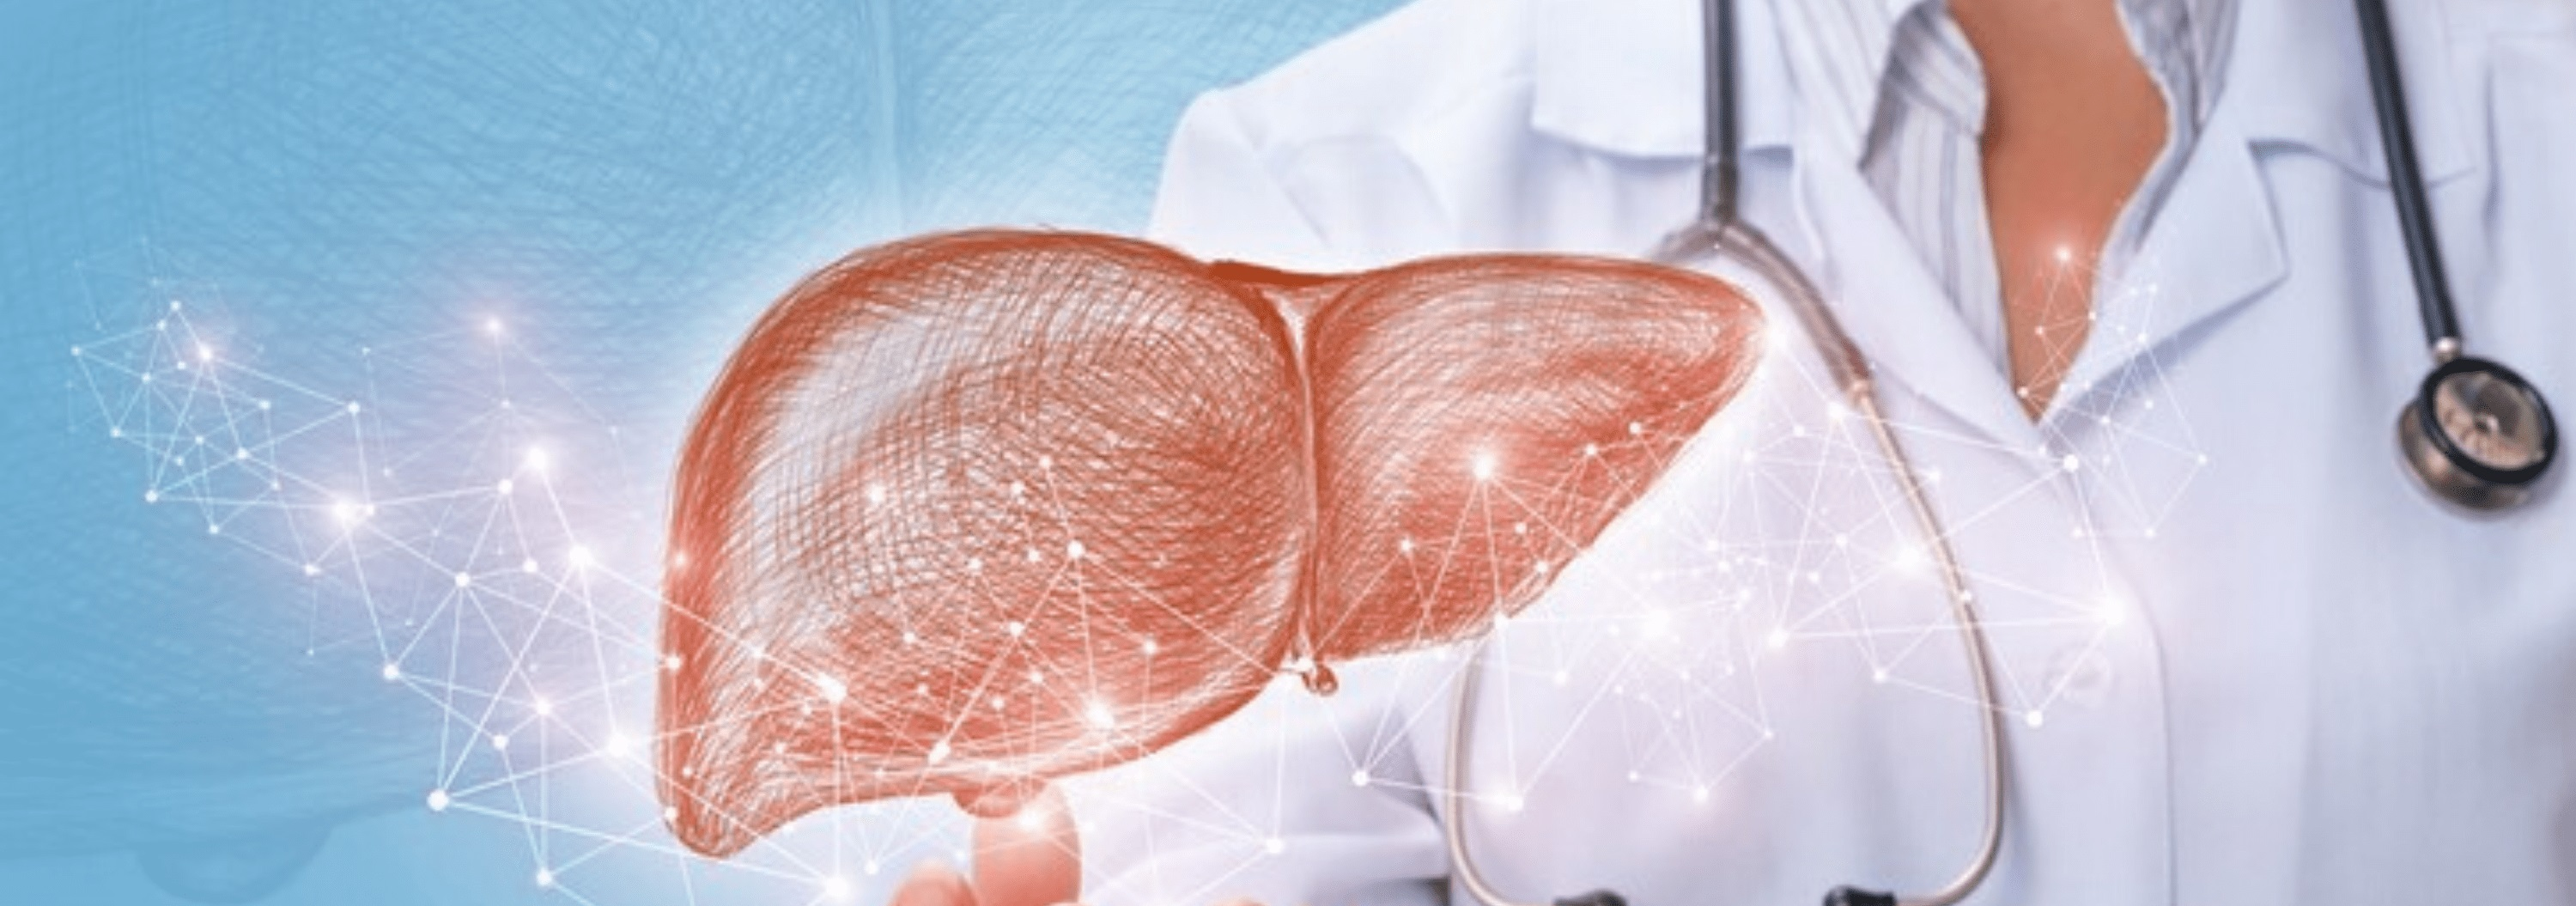 Liver Cancer Treatment In Iran